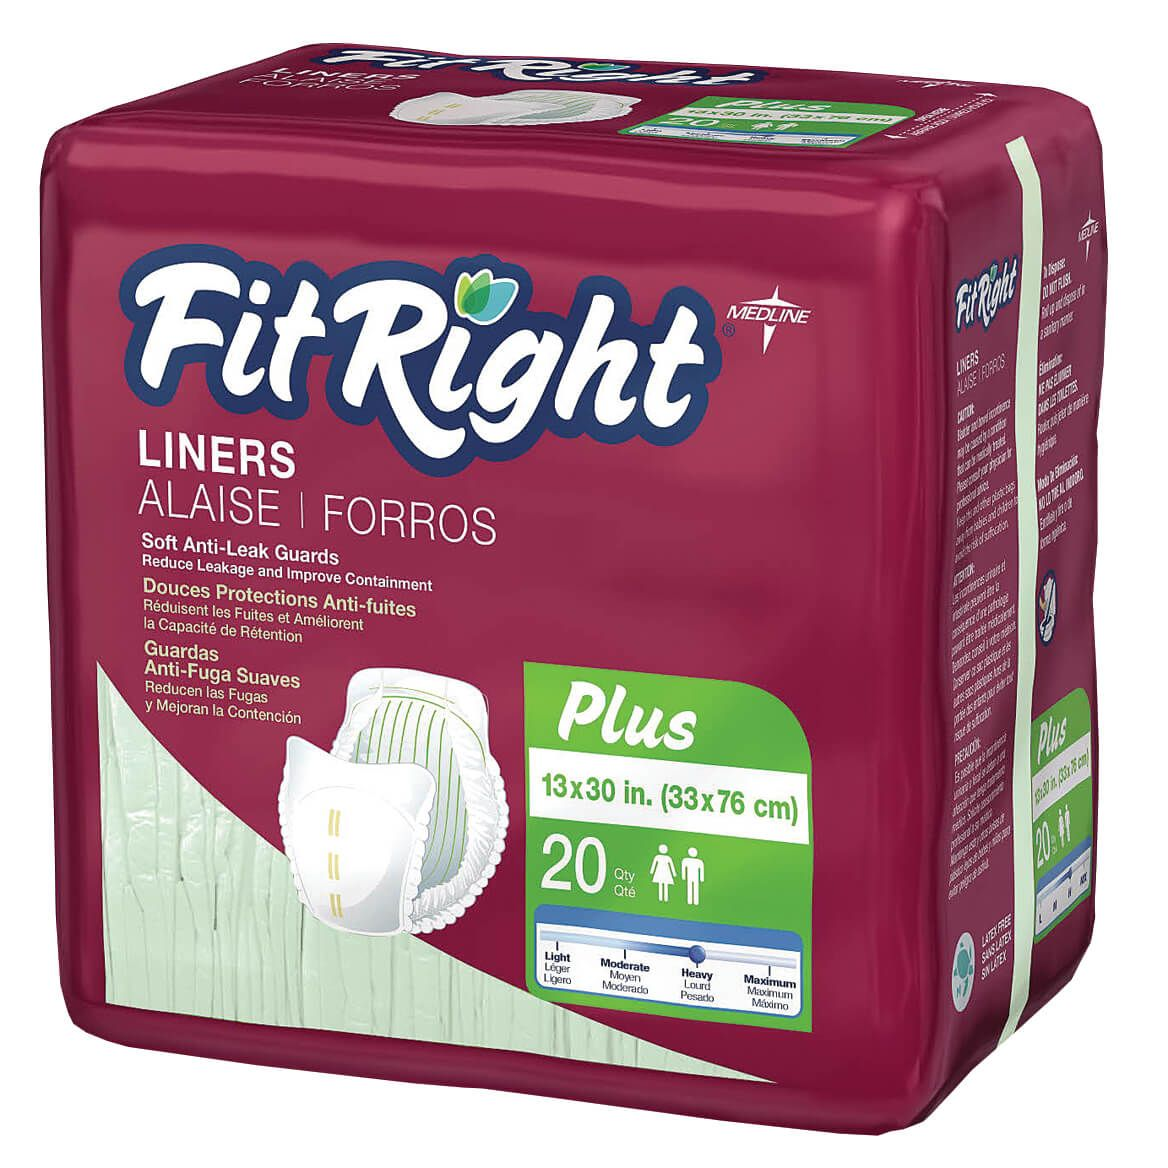 FitRight Liners, Case-351433